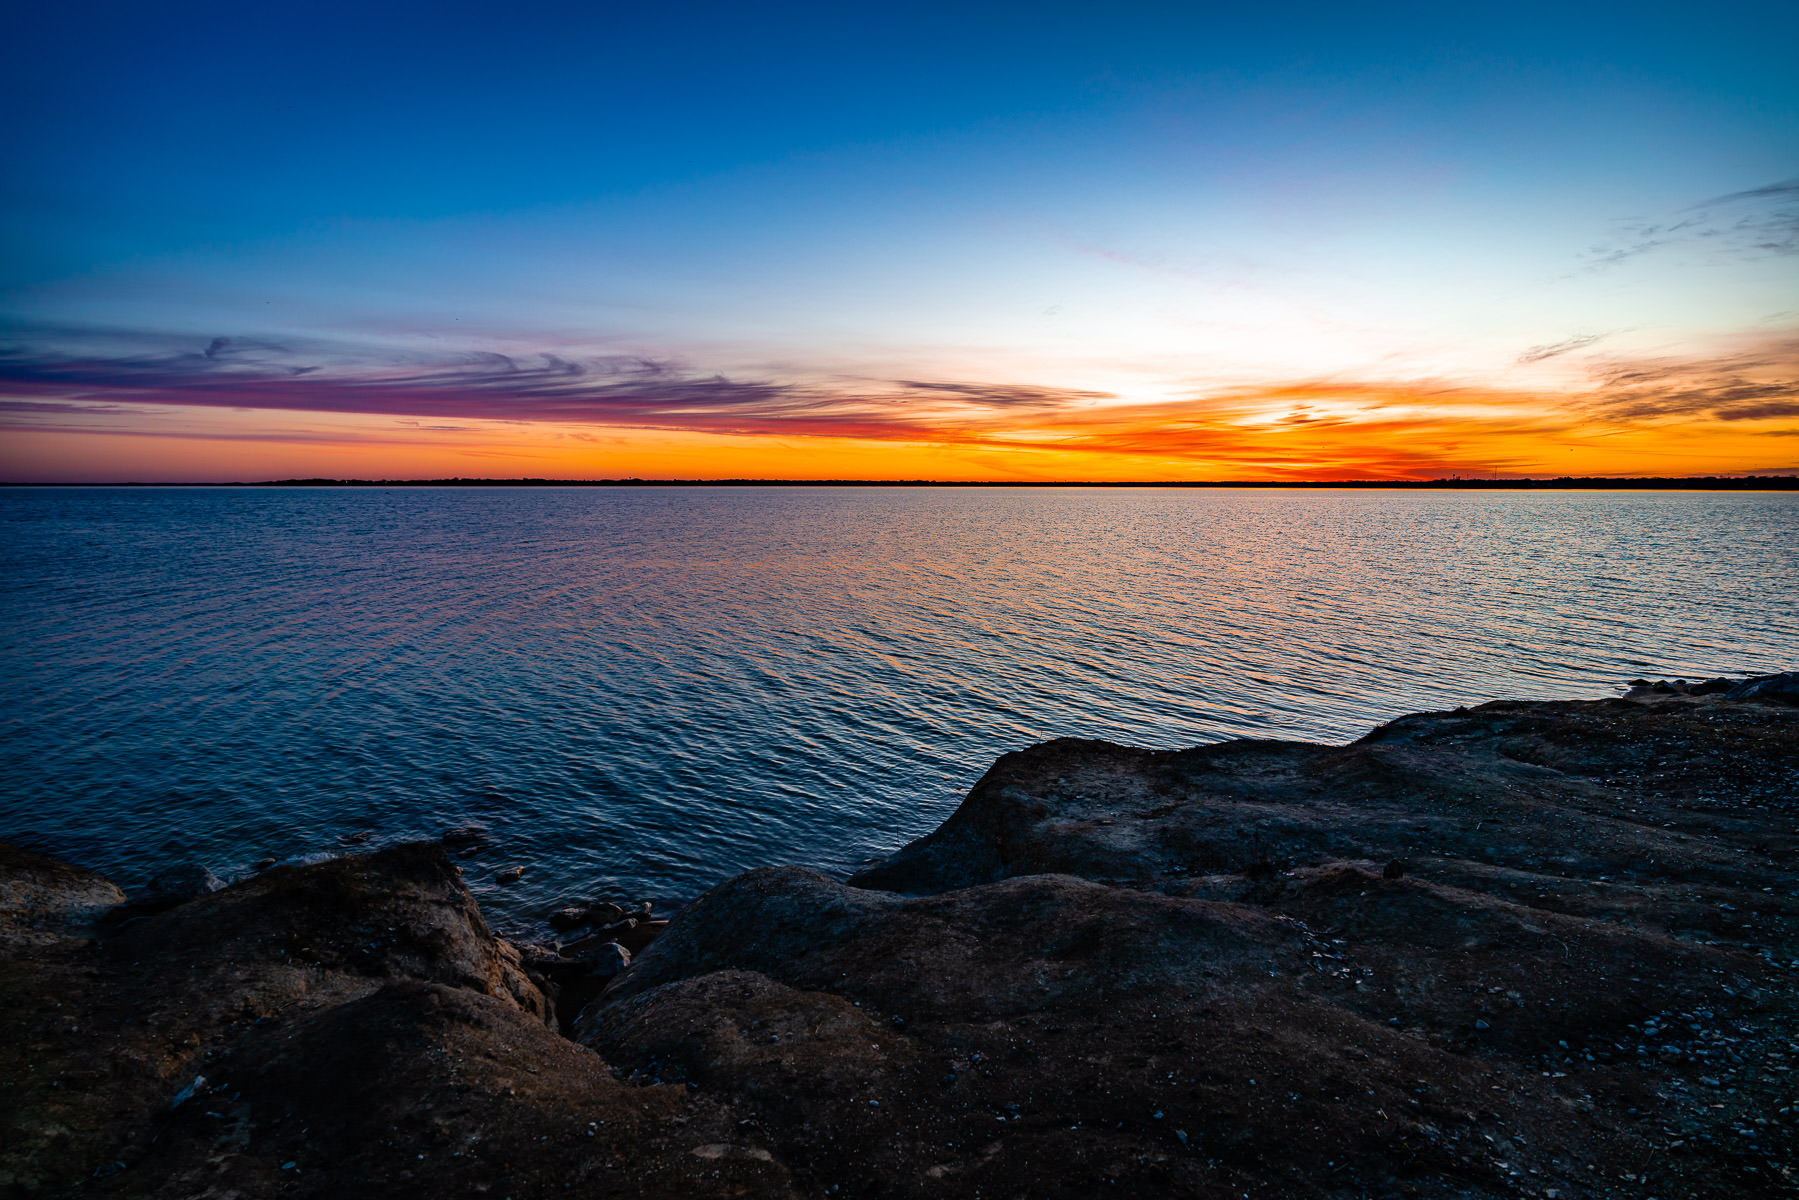 The sun rises on North Texas' Lake Lavon